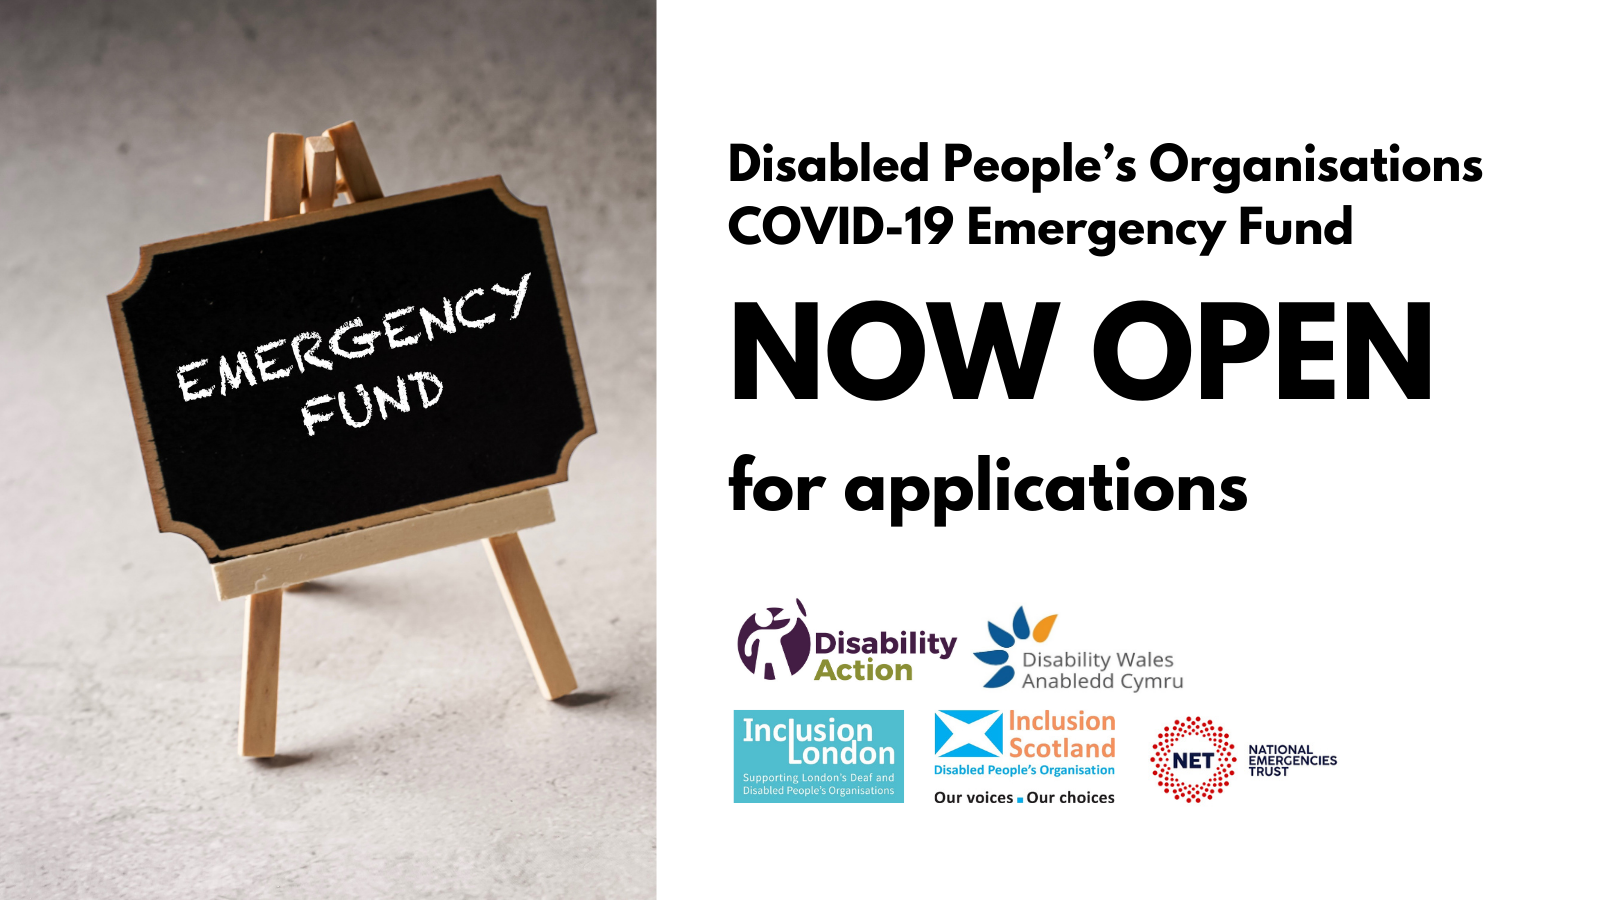 A graphic showing black text on a white background which reads Disabled People's Organisations COVID-19 Emergency Fund, NOW Open for applications. Five organisation logos are shown below the writing, they are Disability Action NI, Disability Wales, Inclusion Scotland, Inclusion London and the National Emergencies Trust